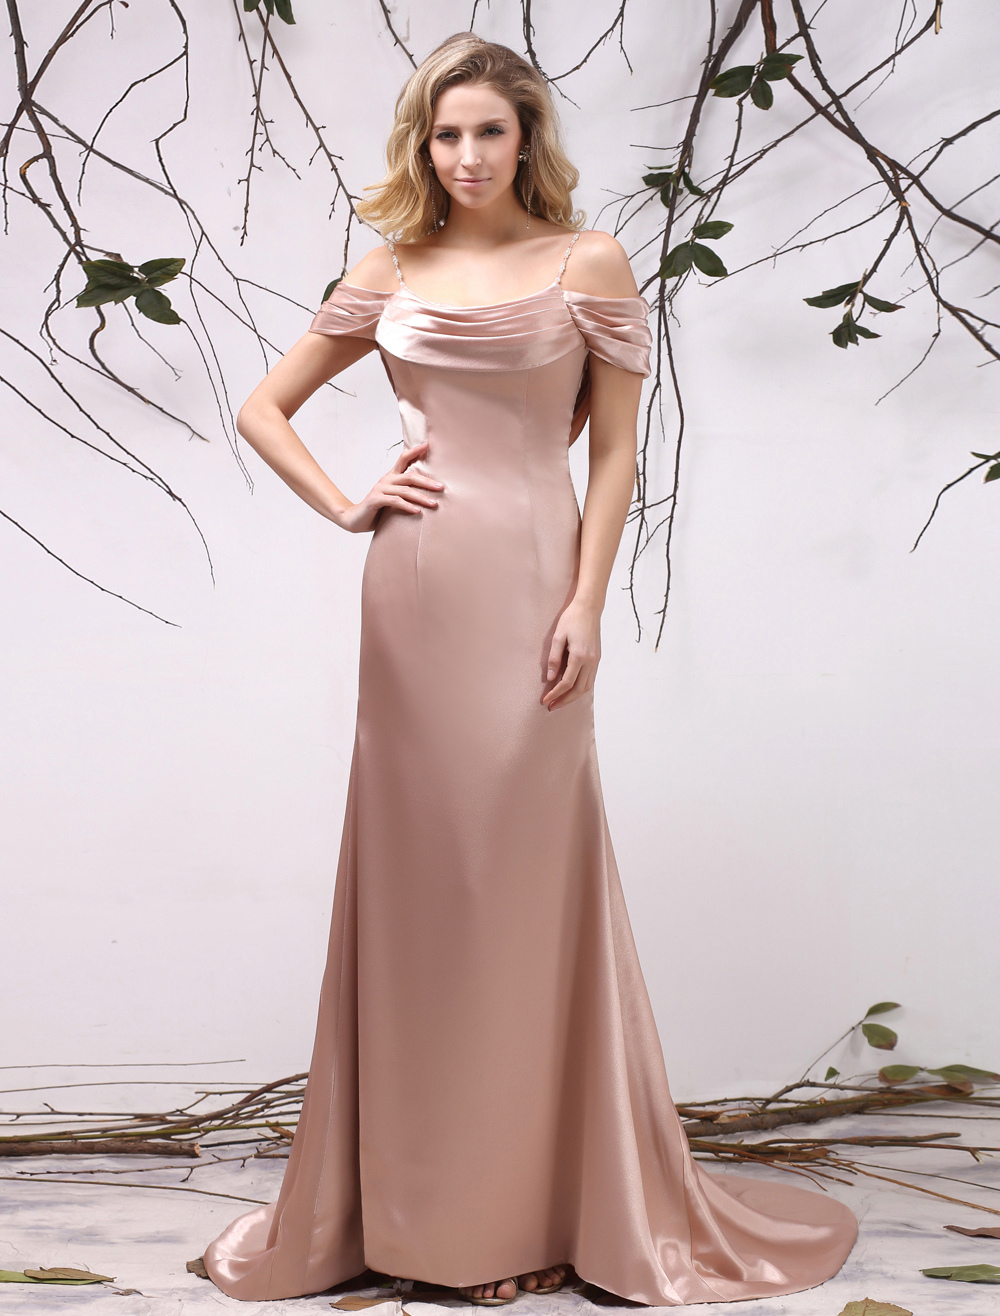 Buy Beautiful Nude A-line Ruched Backless Bridal Mother Dress with Off-The-Shoulder Neck Milanoo for $139.99 in Milanoo store